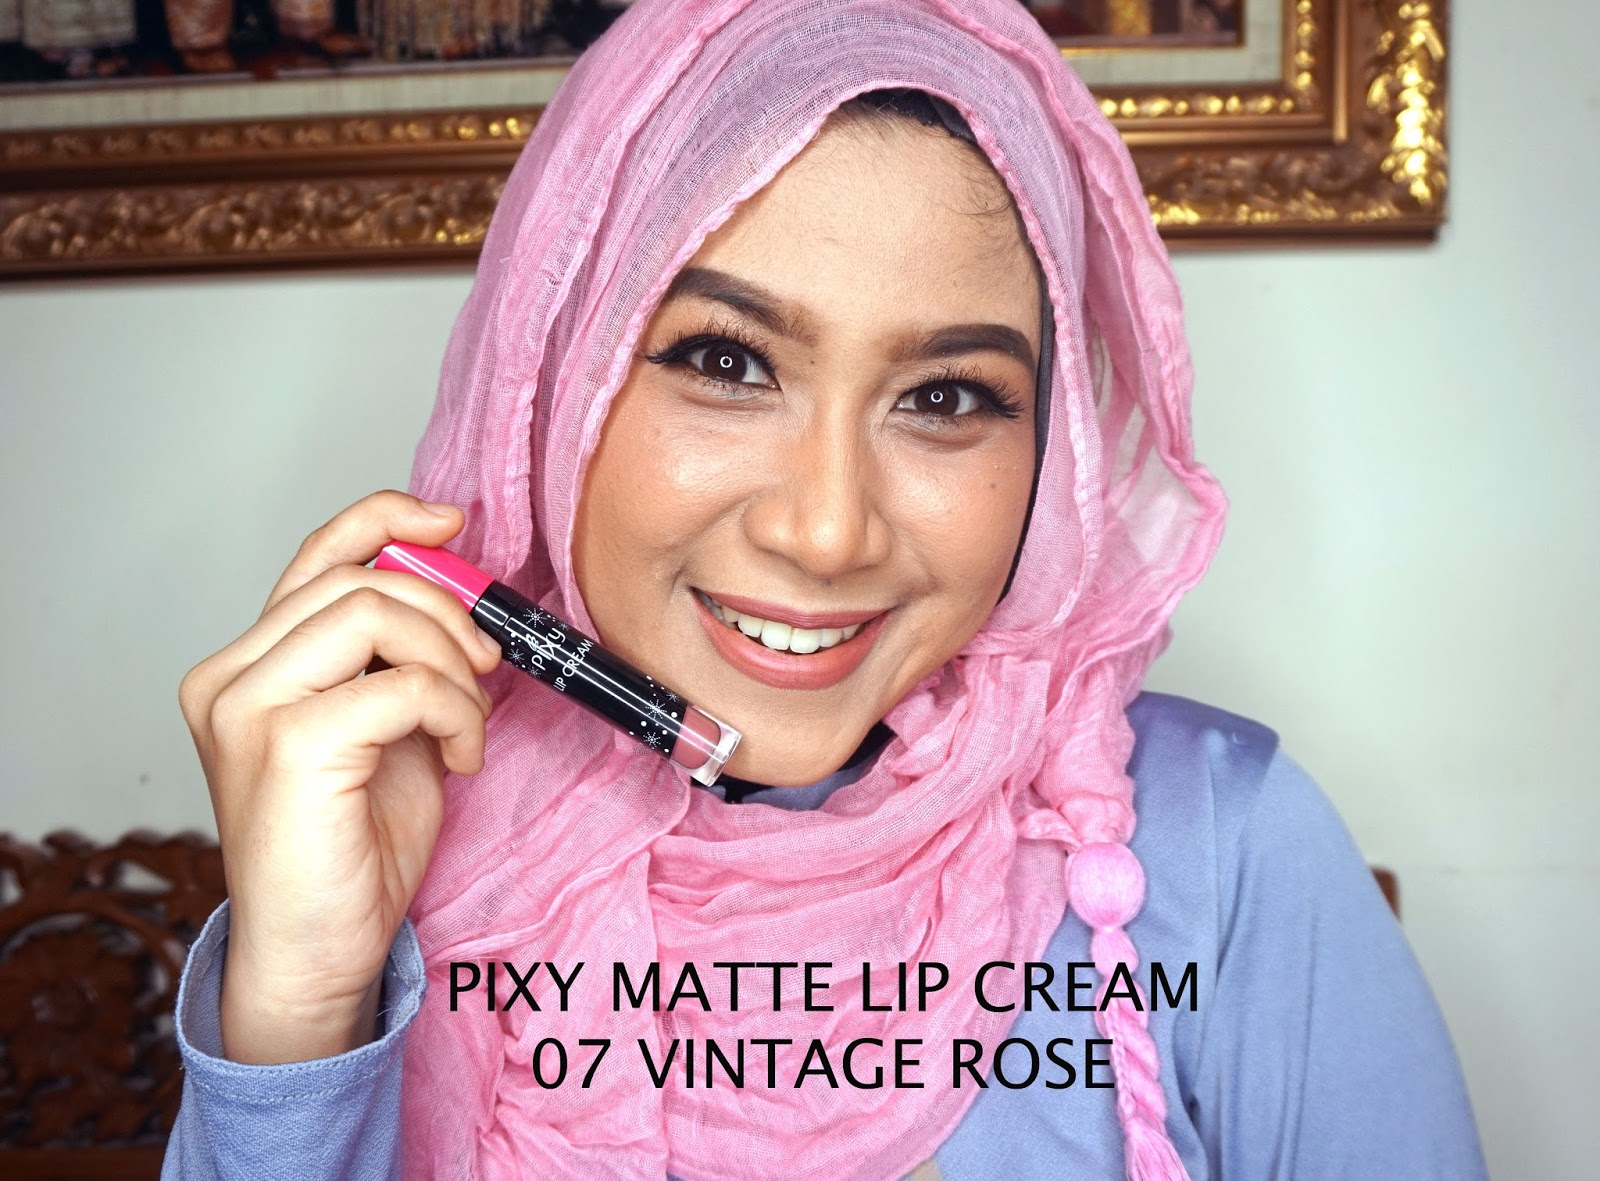 PIXY MATTE LIP CREAM NUDE SERIES 07 VINTAGE ROSE